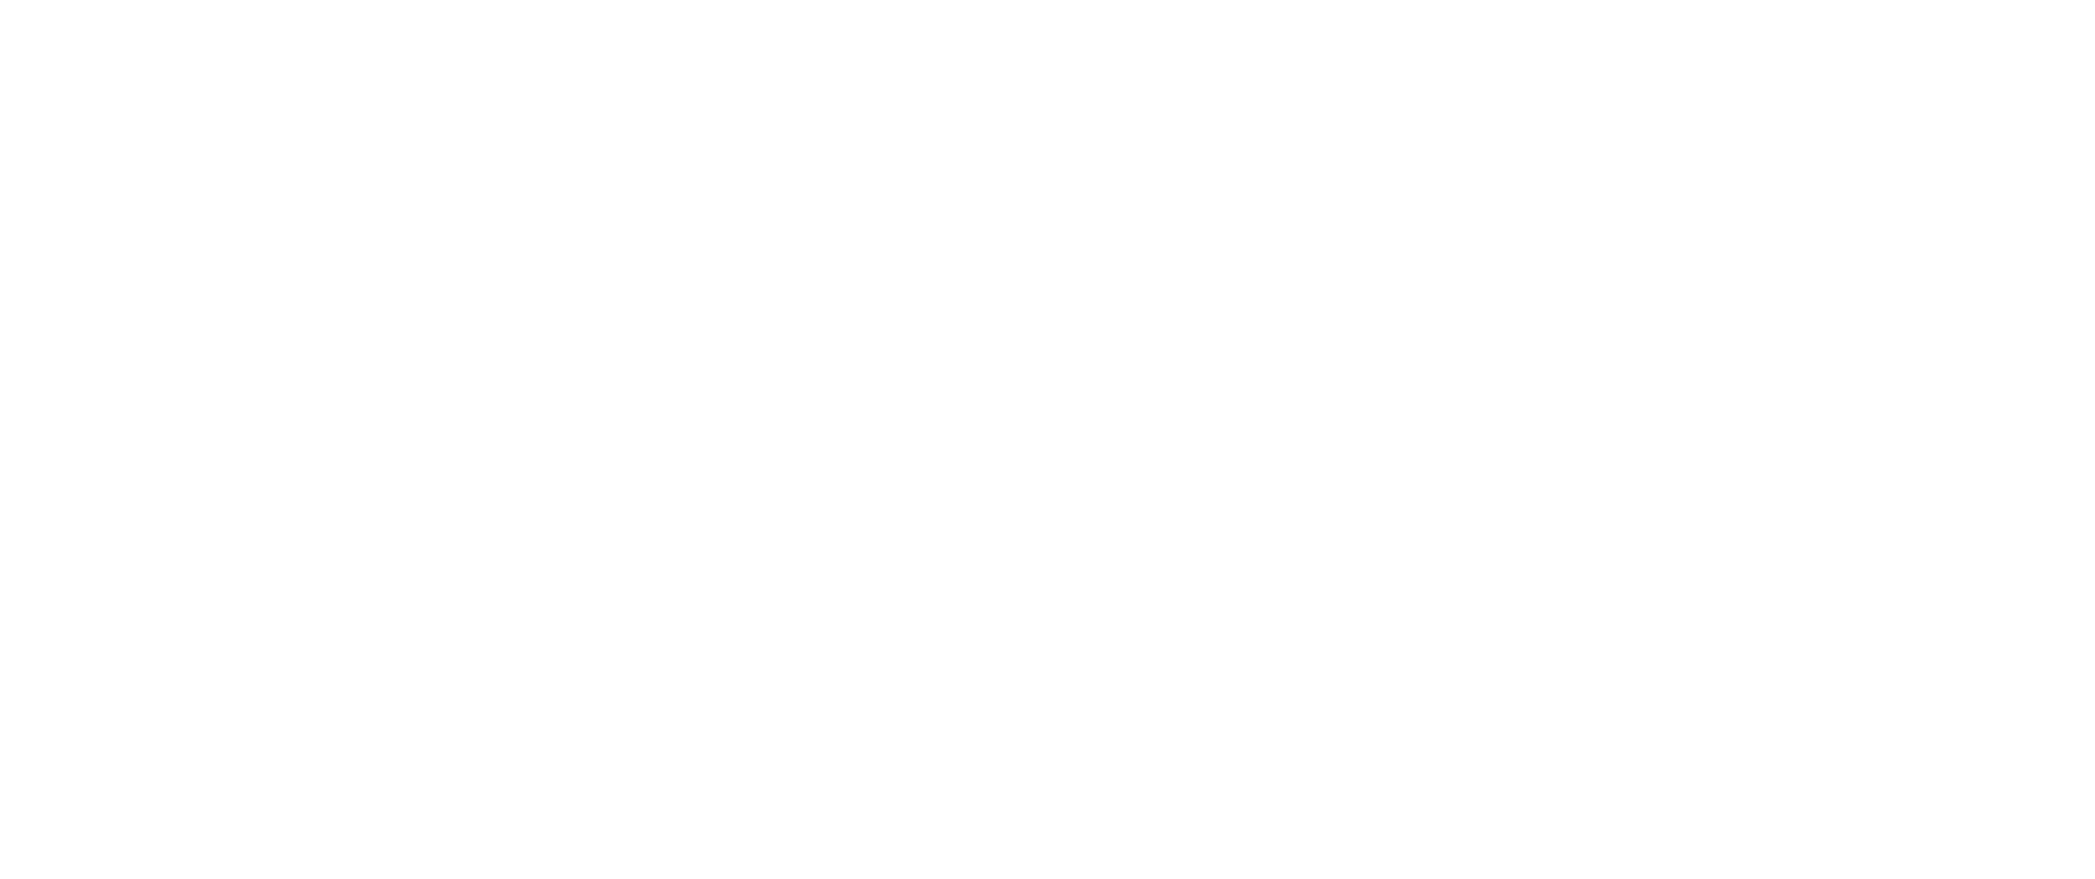 Wertz & Dake Attorneys at Law